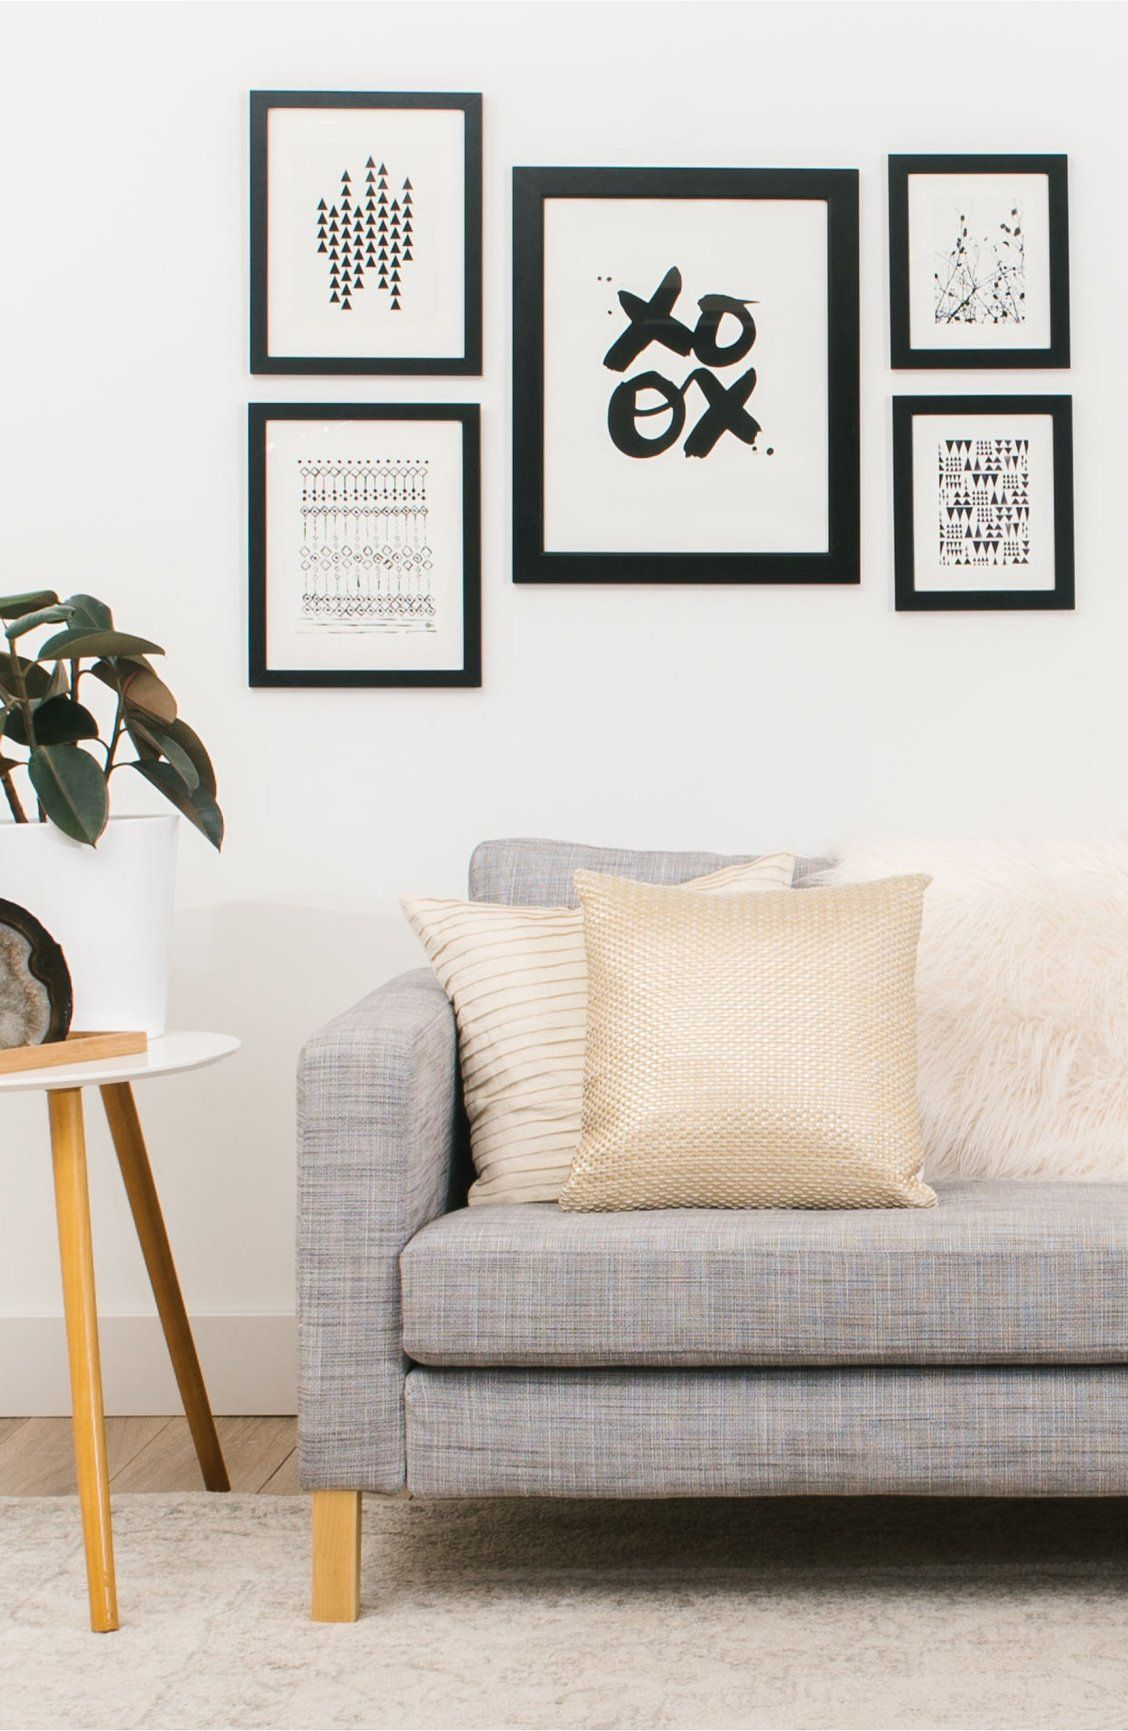 Transform Your Living Space Into An Art Gallery With A